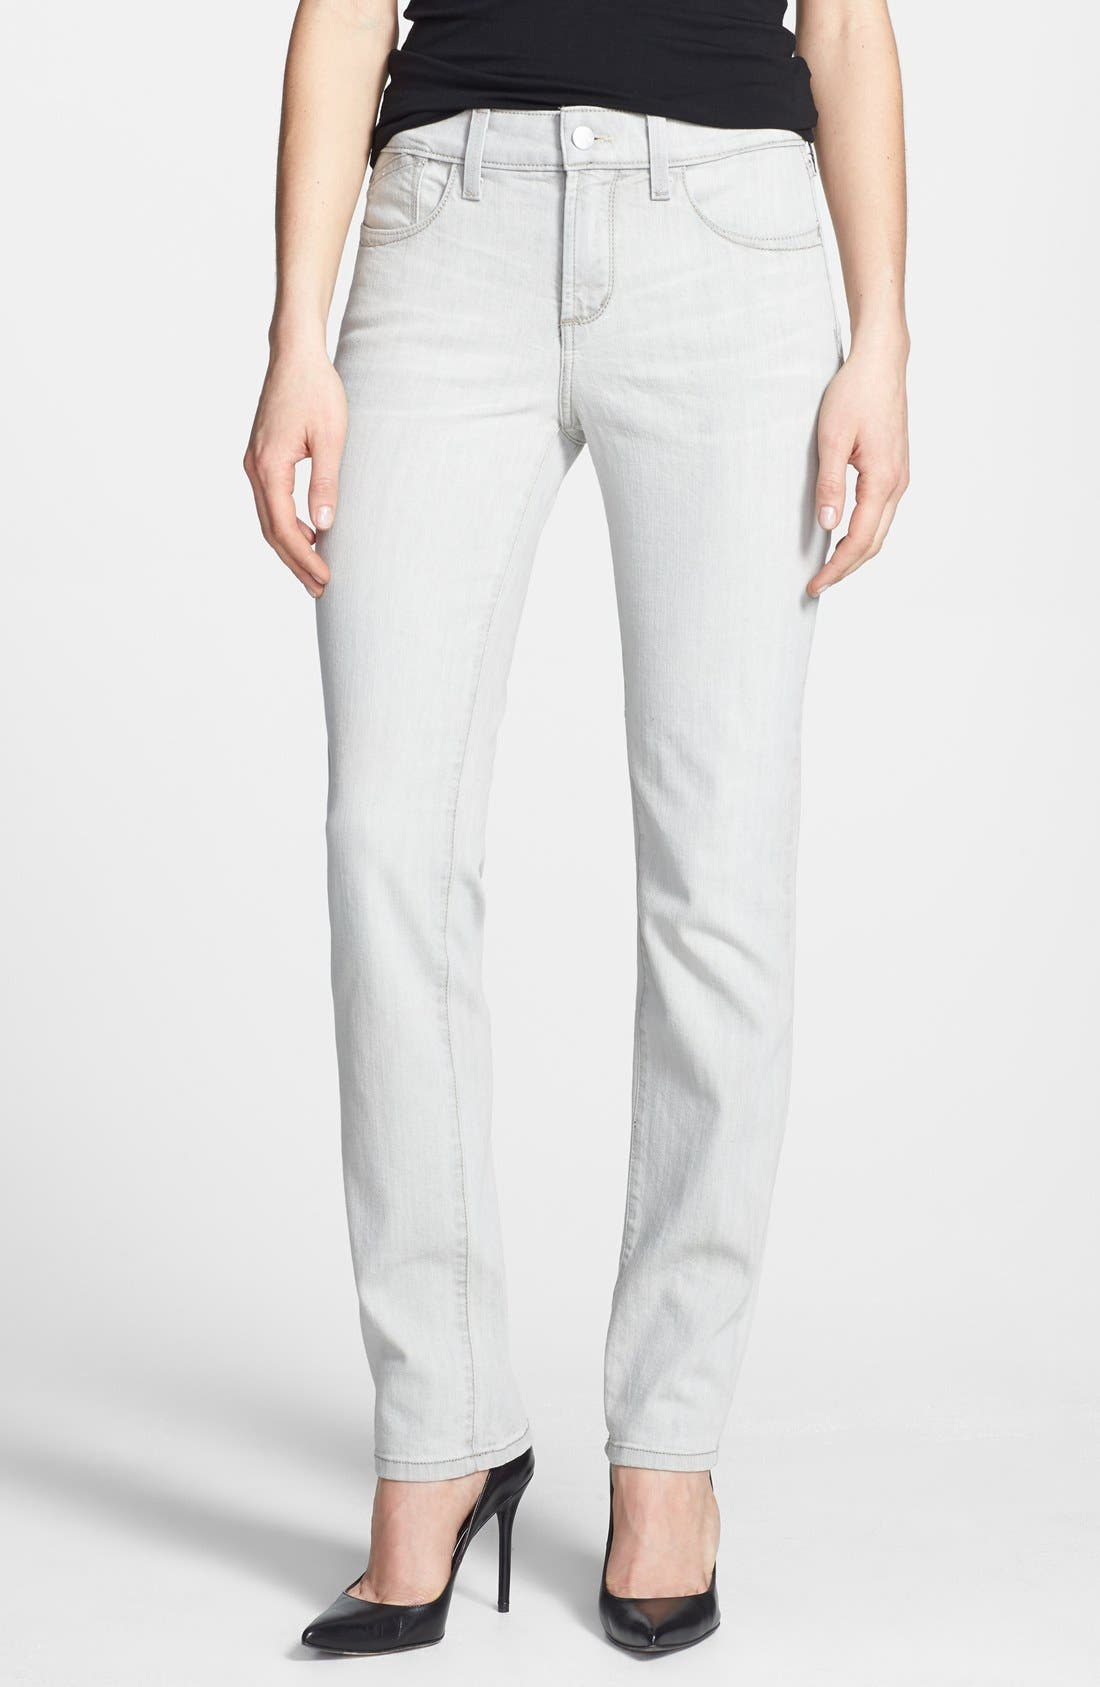 Alternate Image 1 Selected - NYDJ 'Clarissa' Fitted Stretch Ankle Skinny Jeans (Salt Spring)